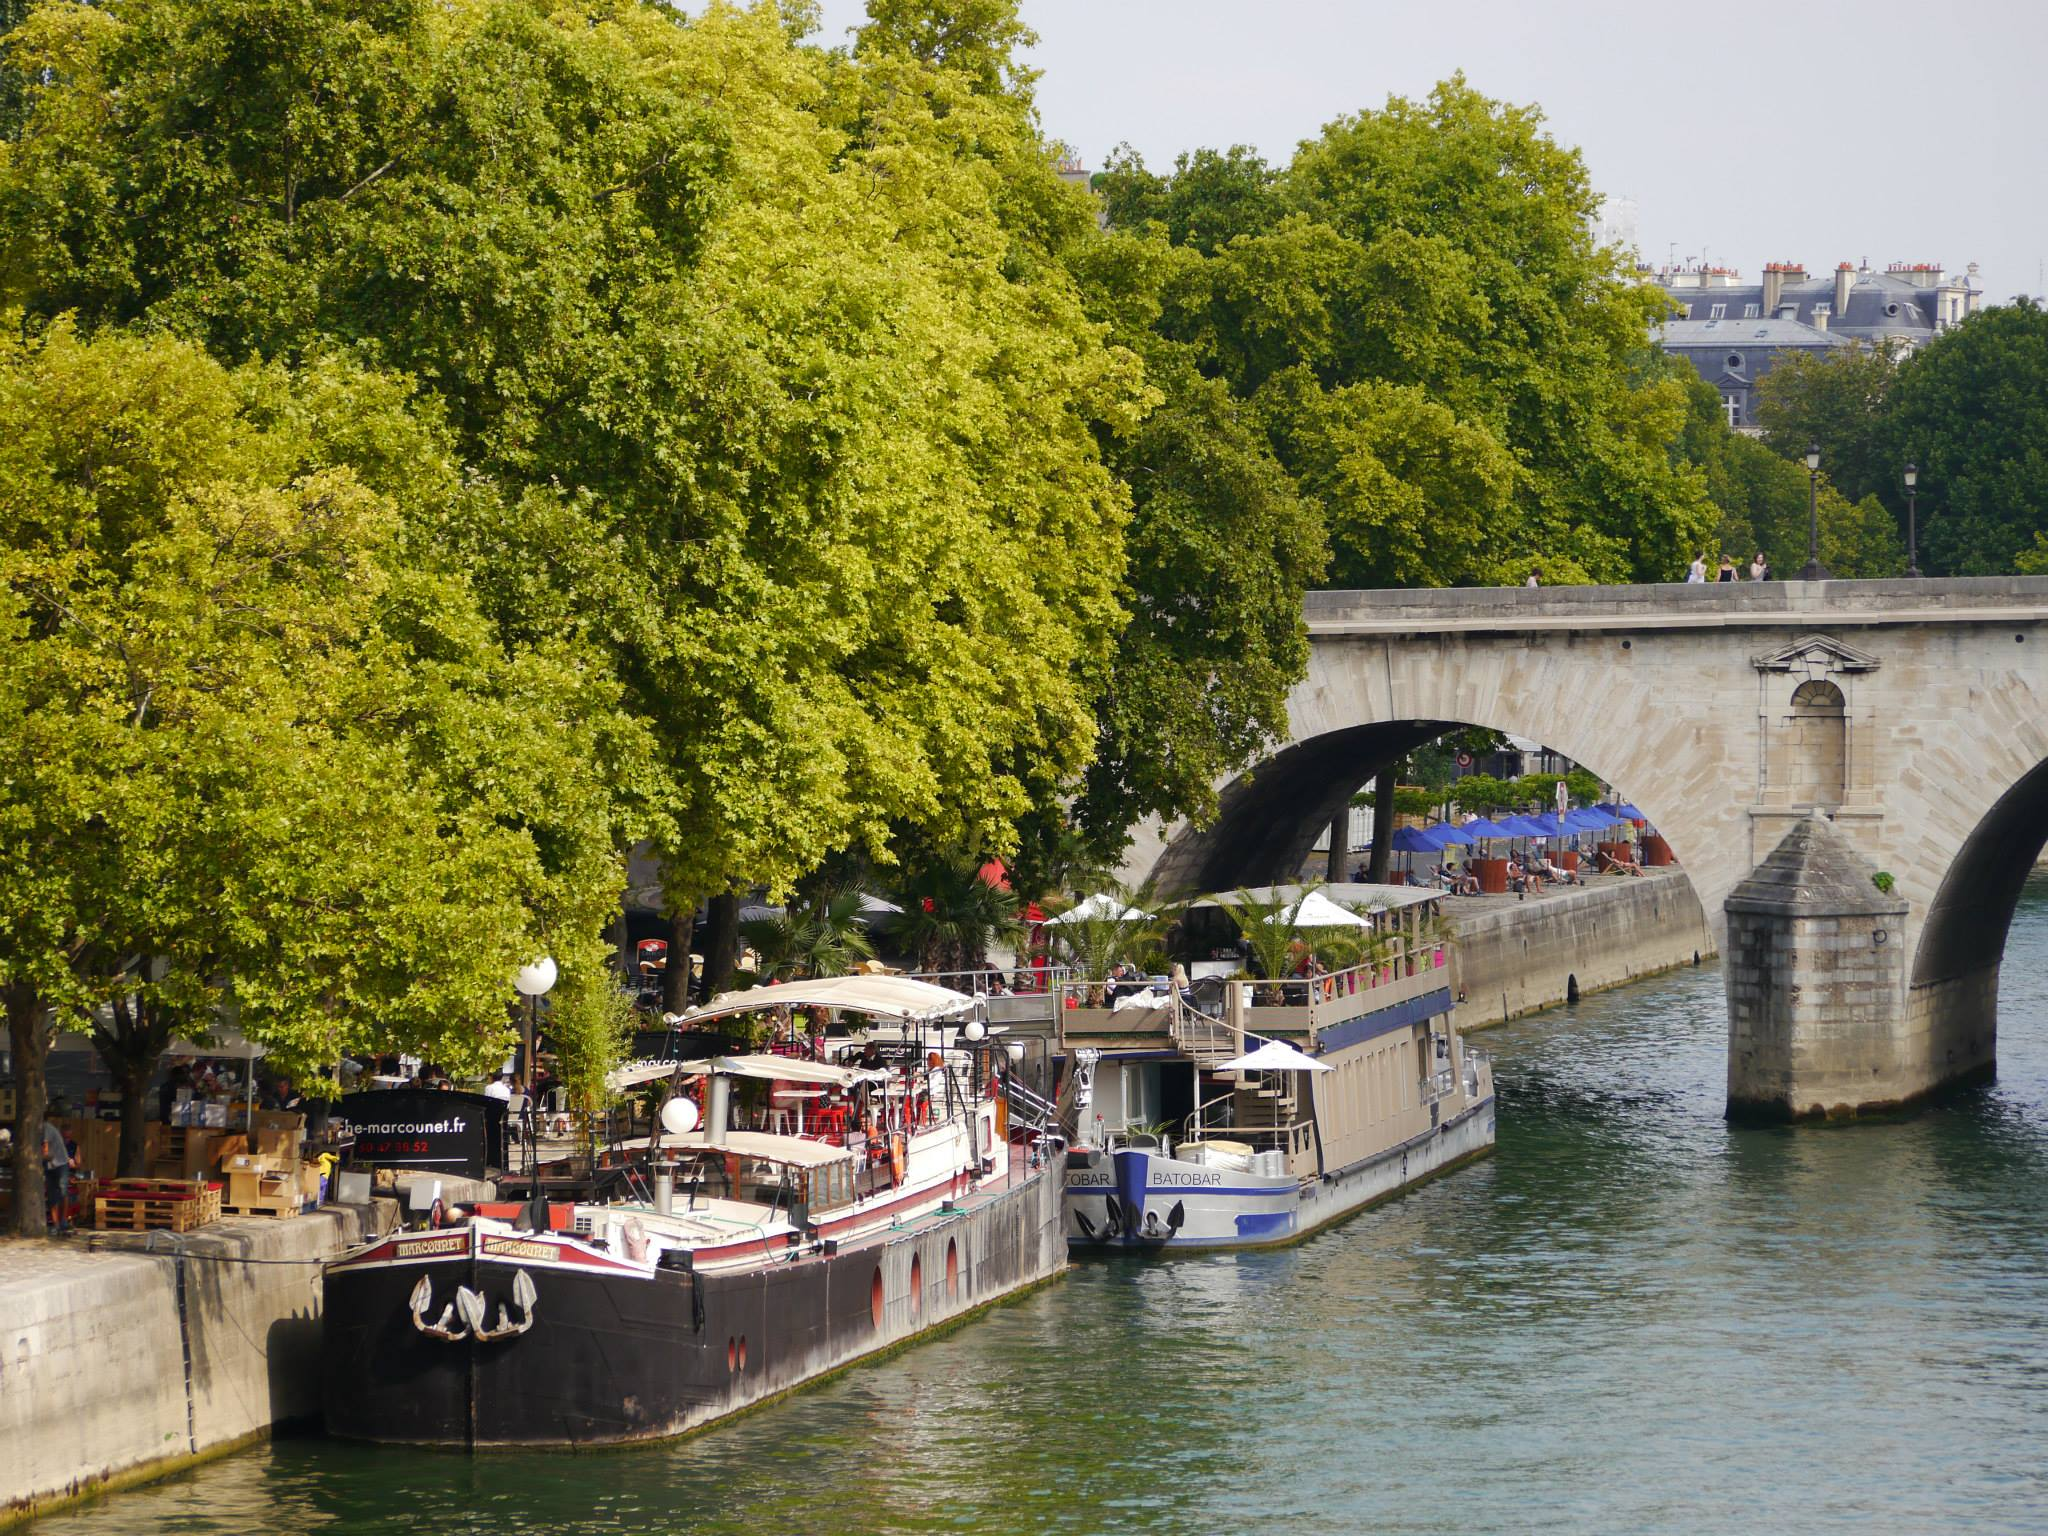 Summer in Paris  2015 Paris Plage  wiht www.rentparis.com